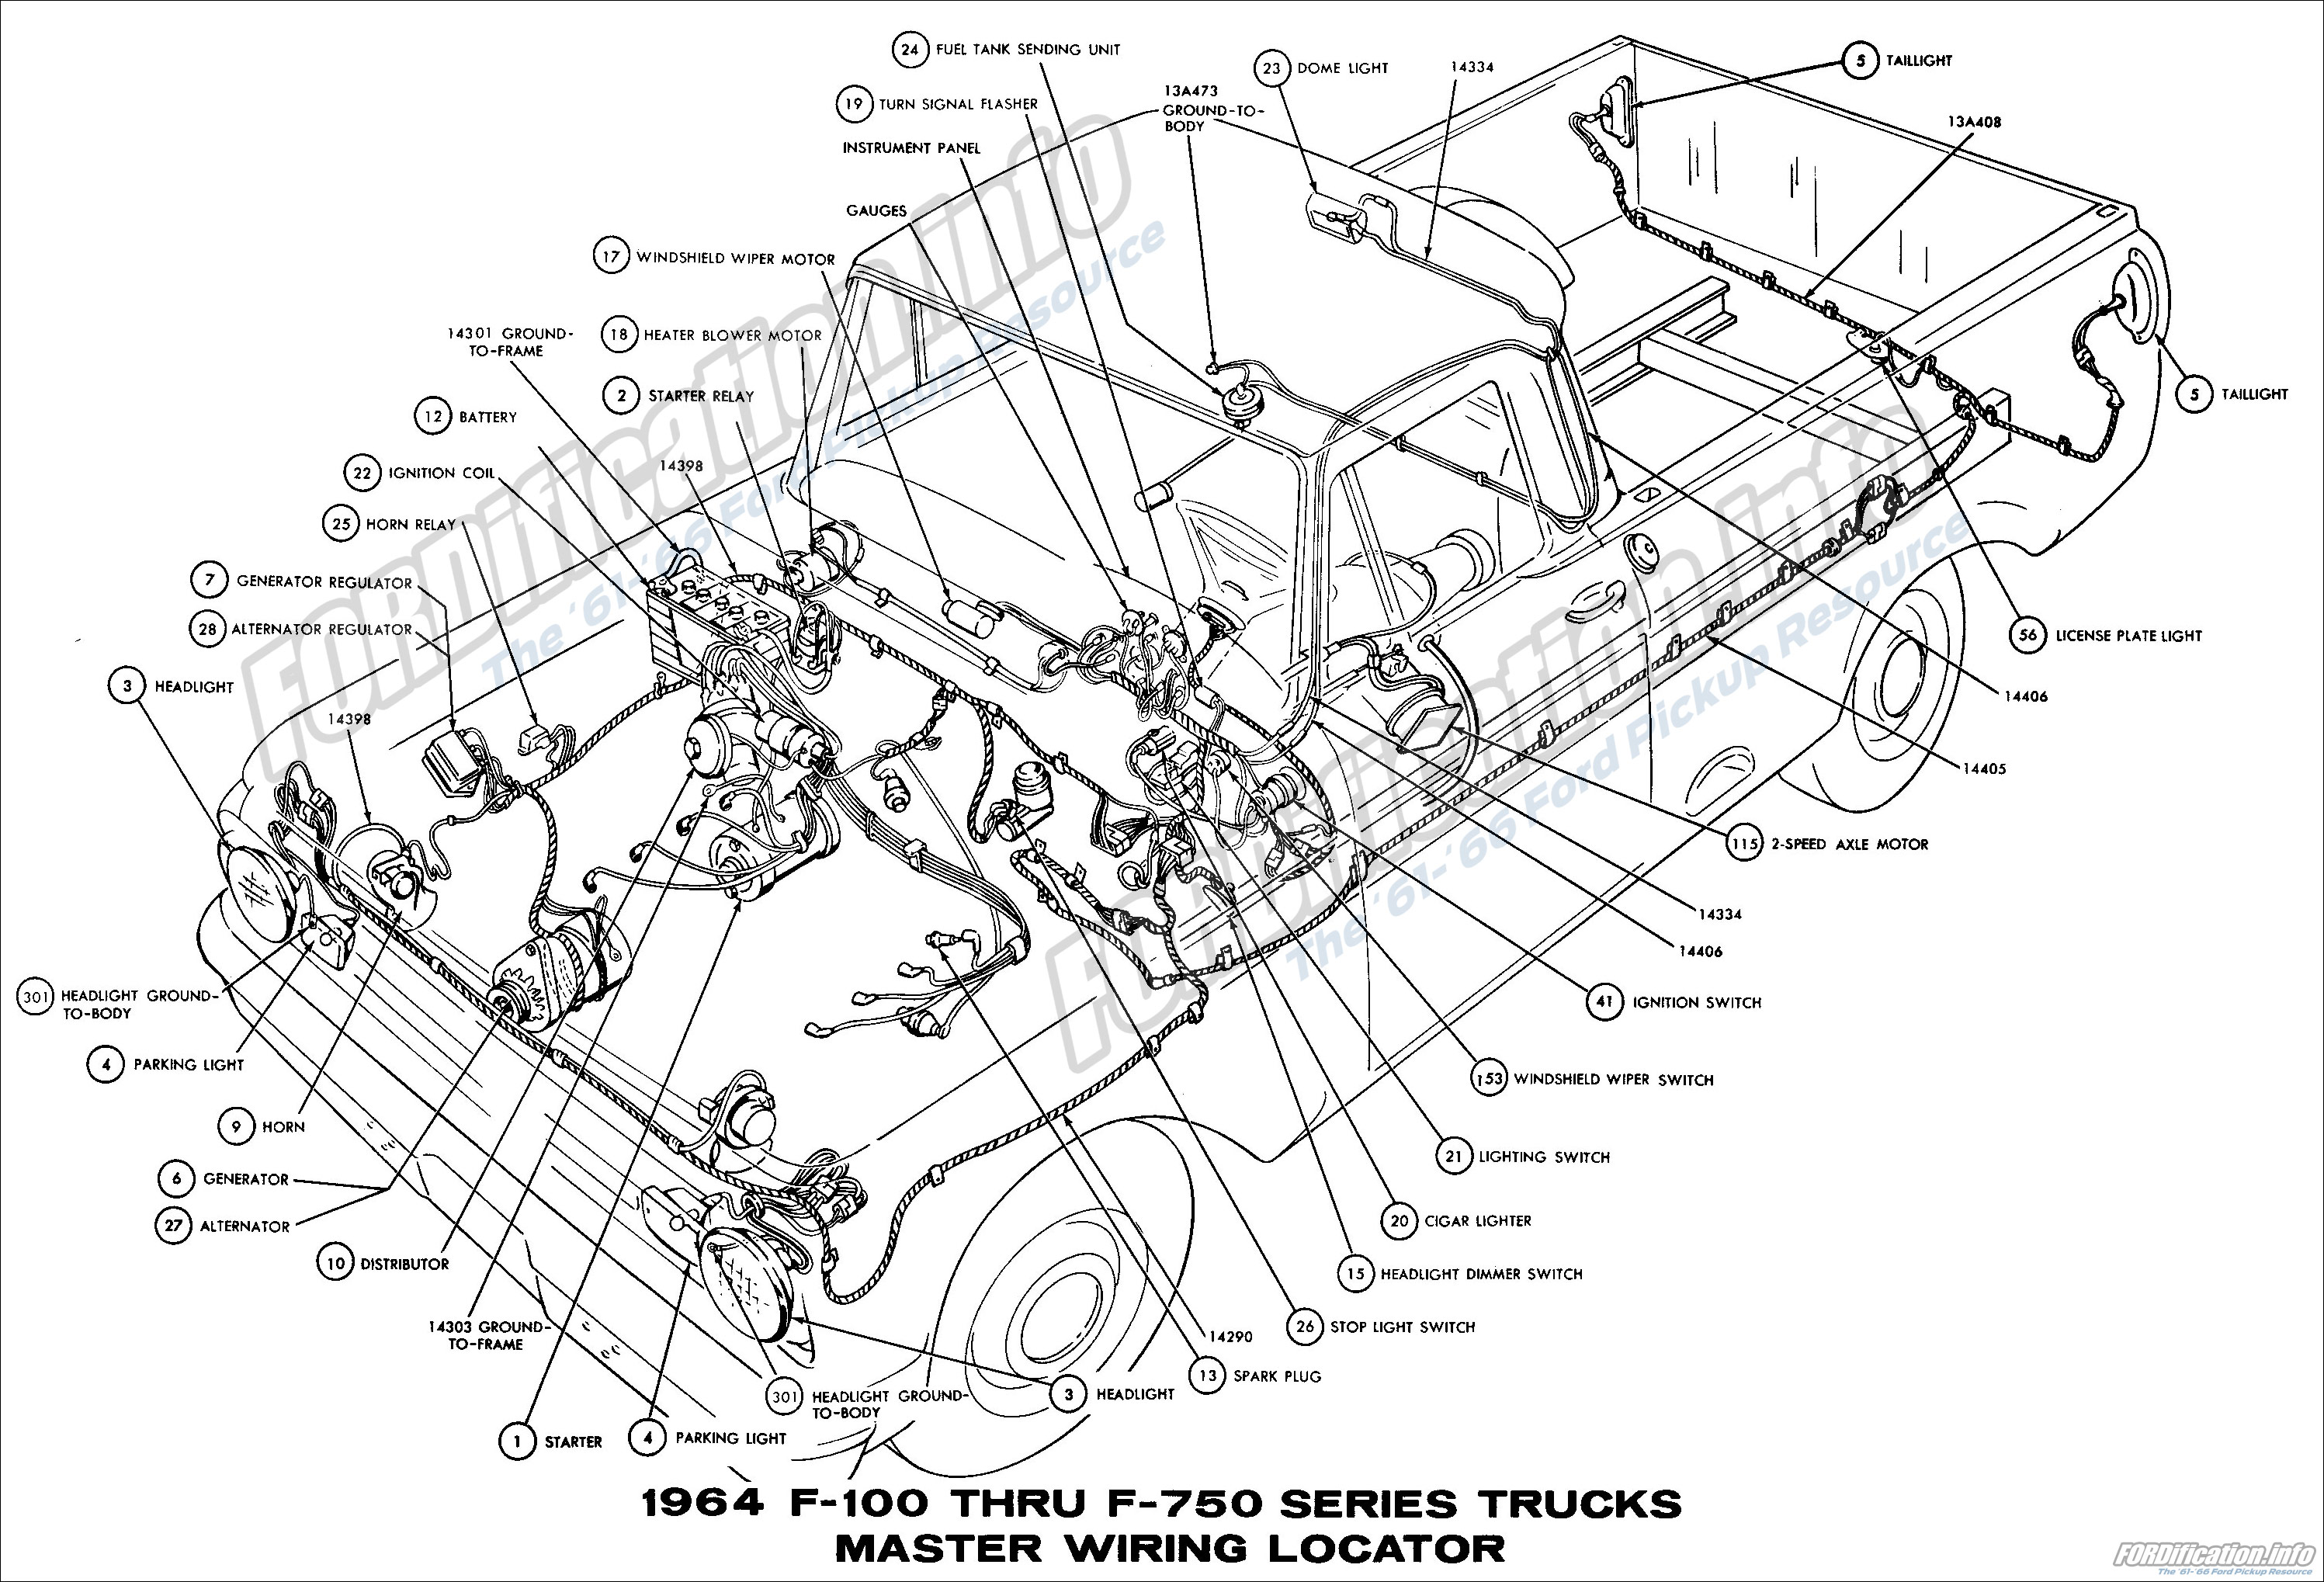 1985 Ford Ranger Heater Wiring Diagram Trusted Capri 66 Pickup Basic Guide U2022 Fuse Panel